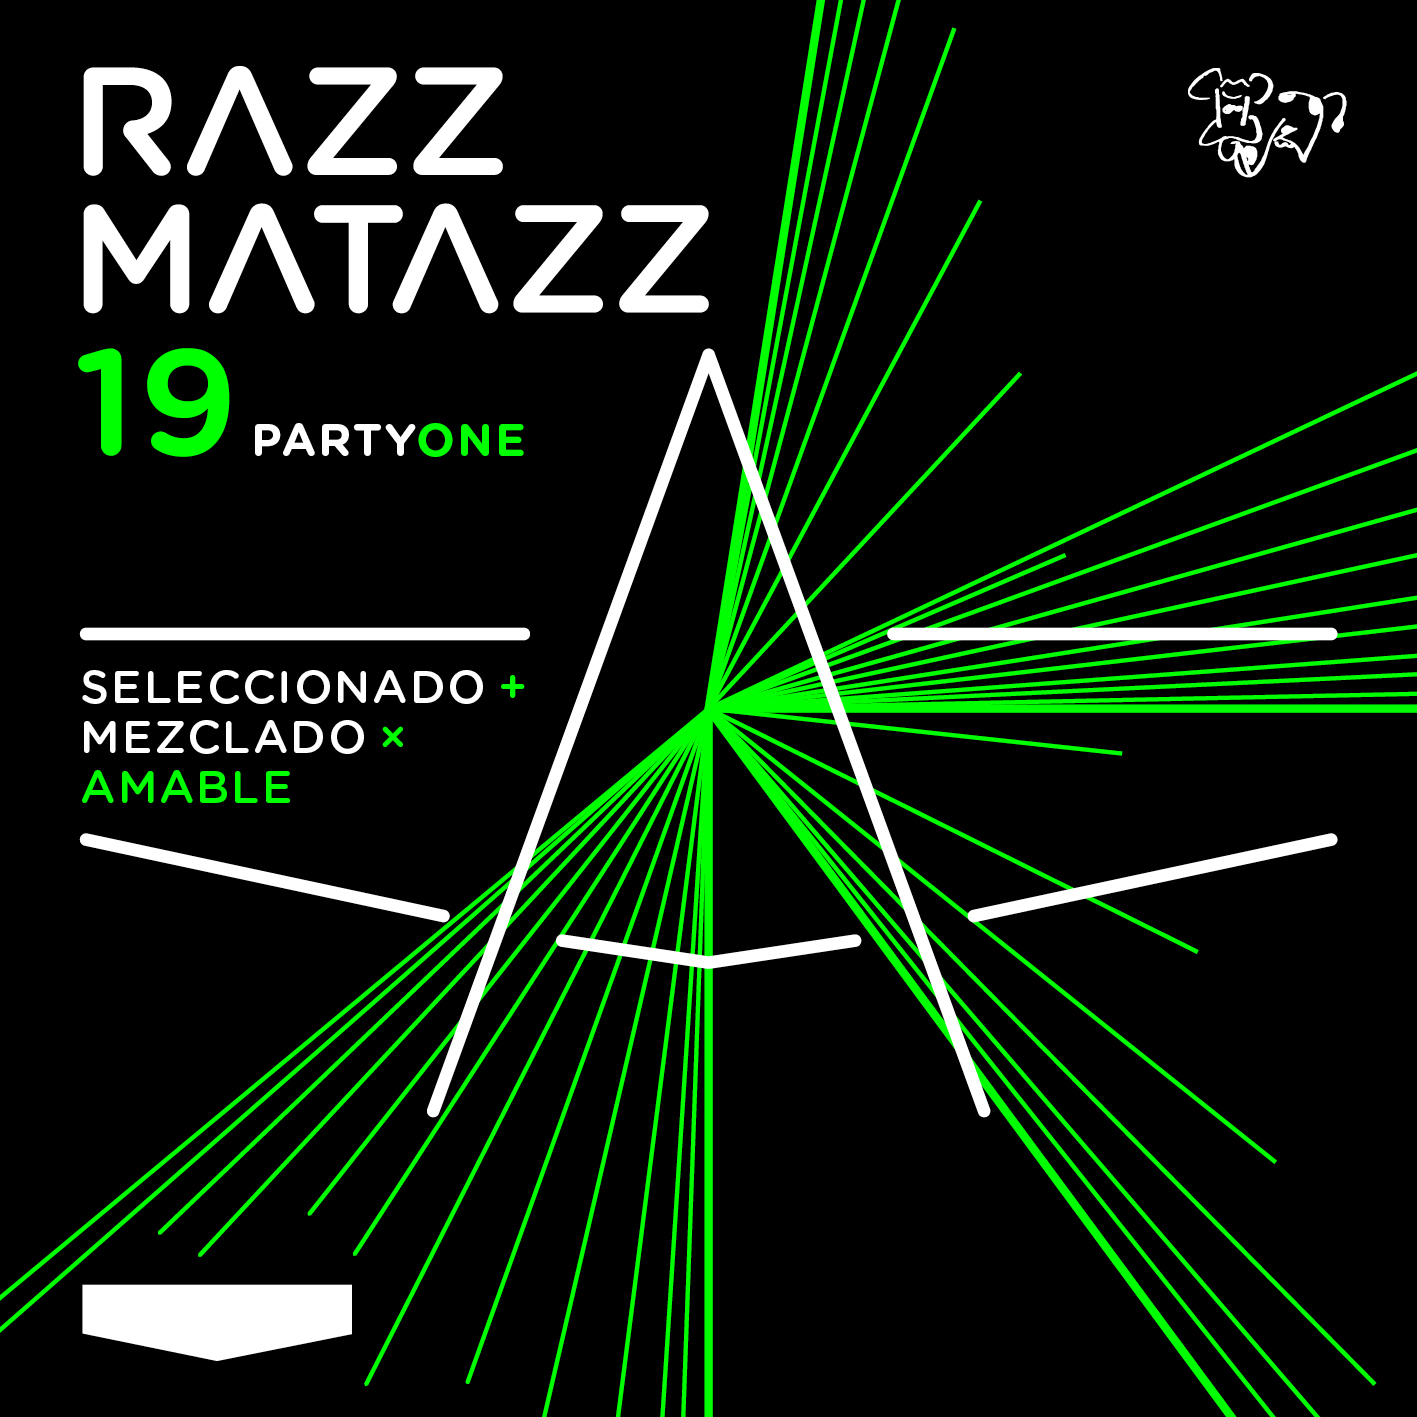 RAZZMATAZZ '19 Party One